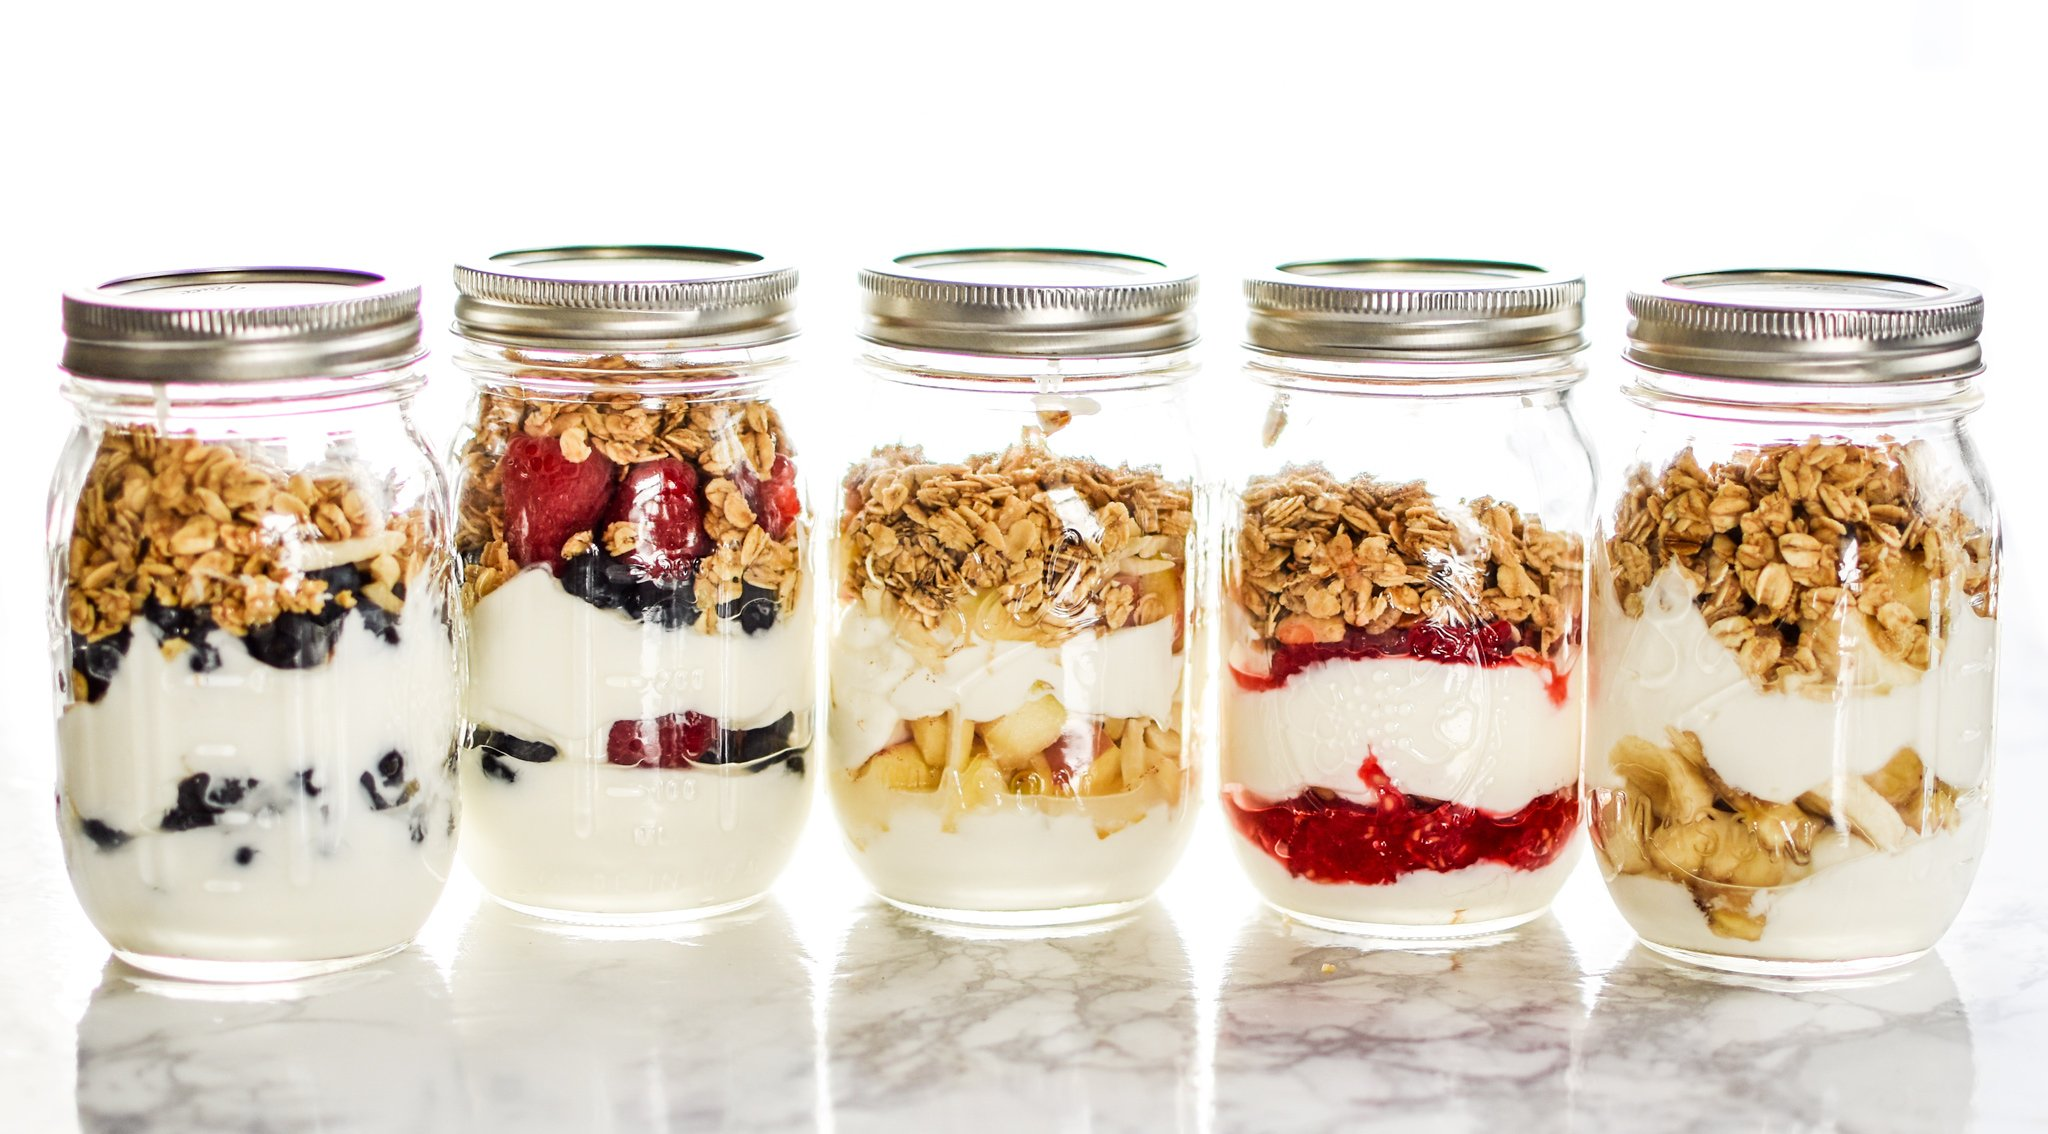 5 Make-Ahead Fruit & Greek Yogurt Parfait Ideas to Try for Breakfast - Greek yogurt with just a hint of sweetness, layered with fruits and topped with granola, 5 WAYS!! Prep ahead and grab it on your way out the door tomorrow! - ProjectMealPlan.com